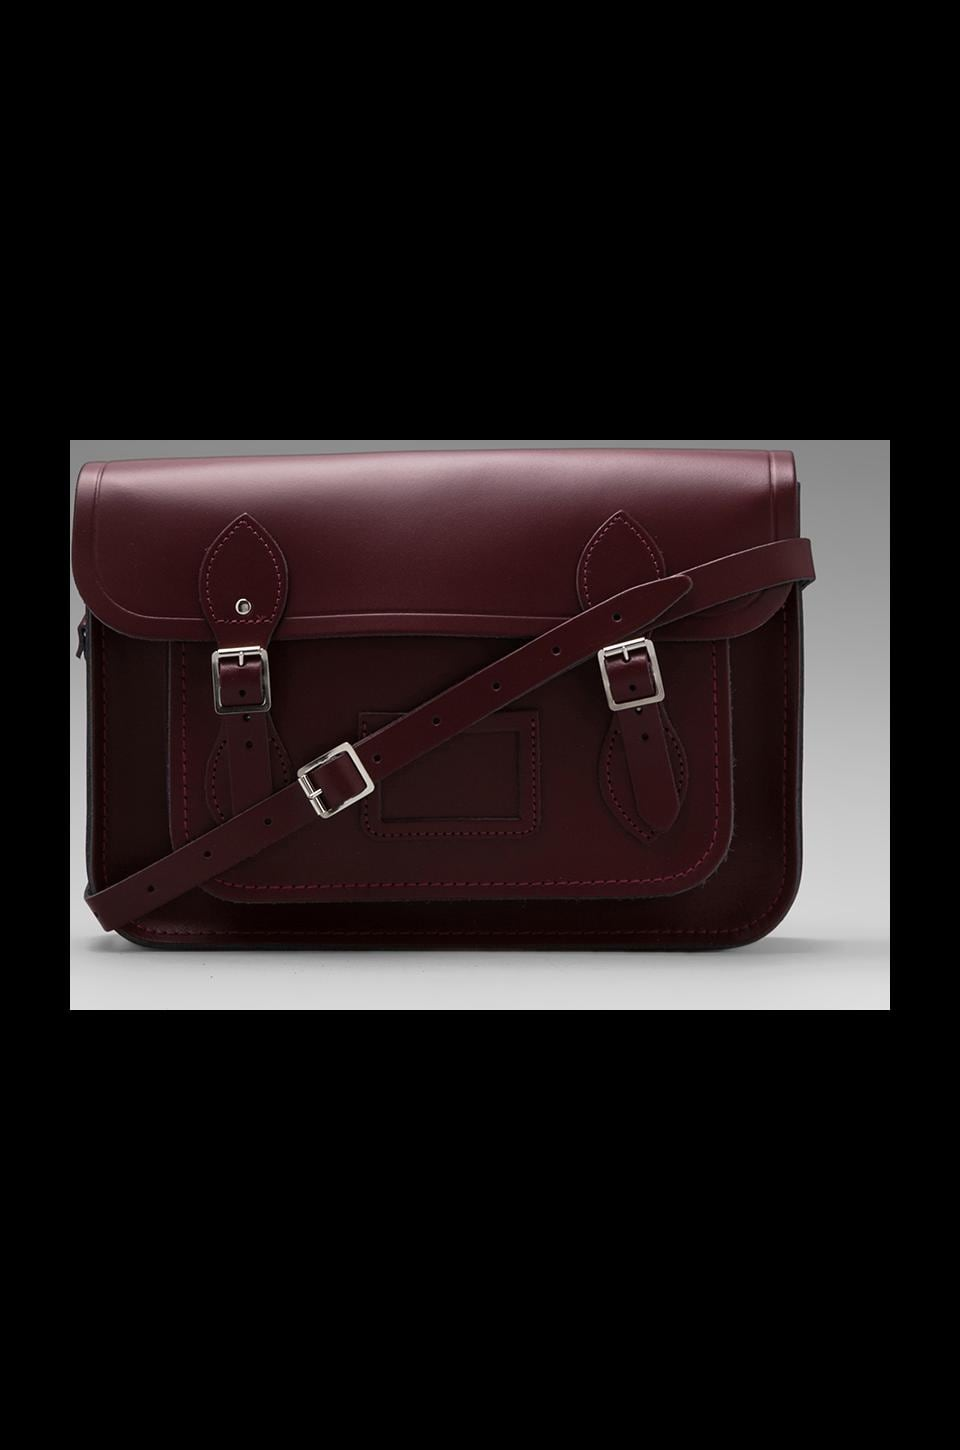 The Cambridge Satchel Company Core Collection 13'' Satchel in Oxblood